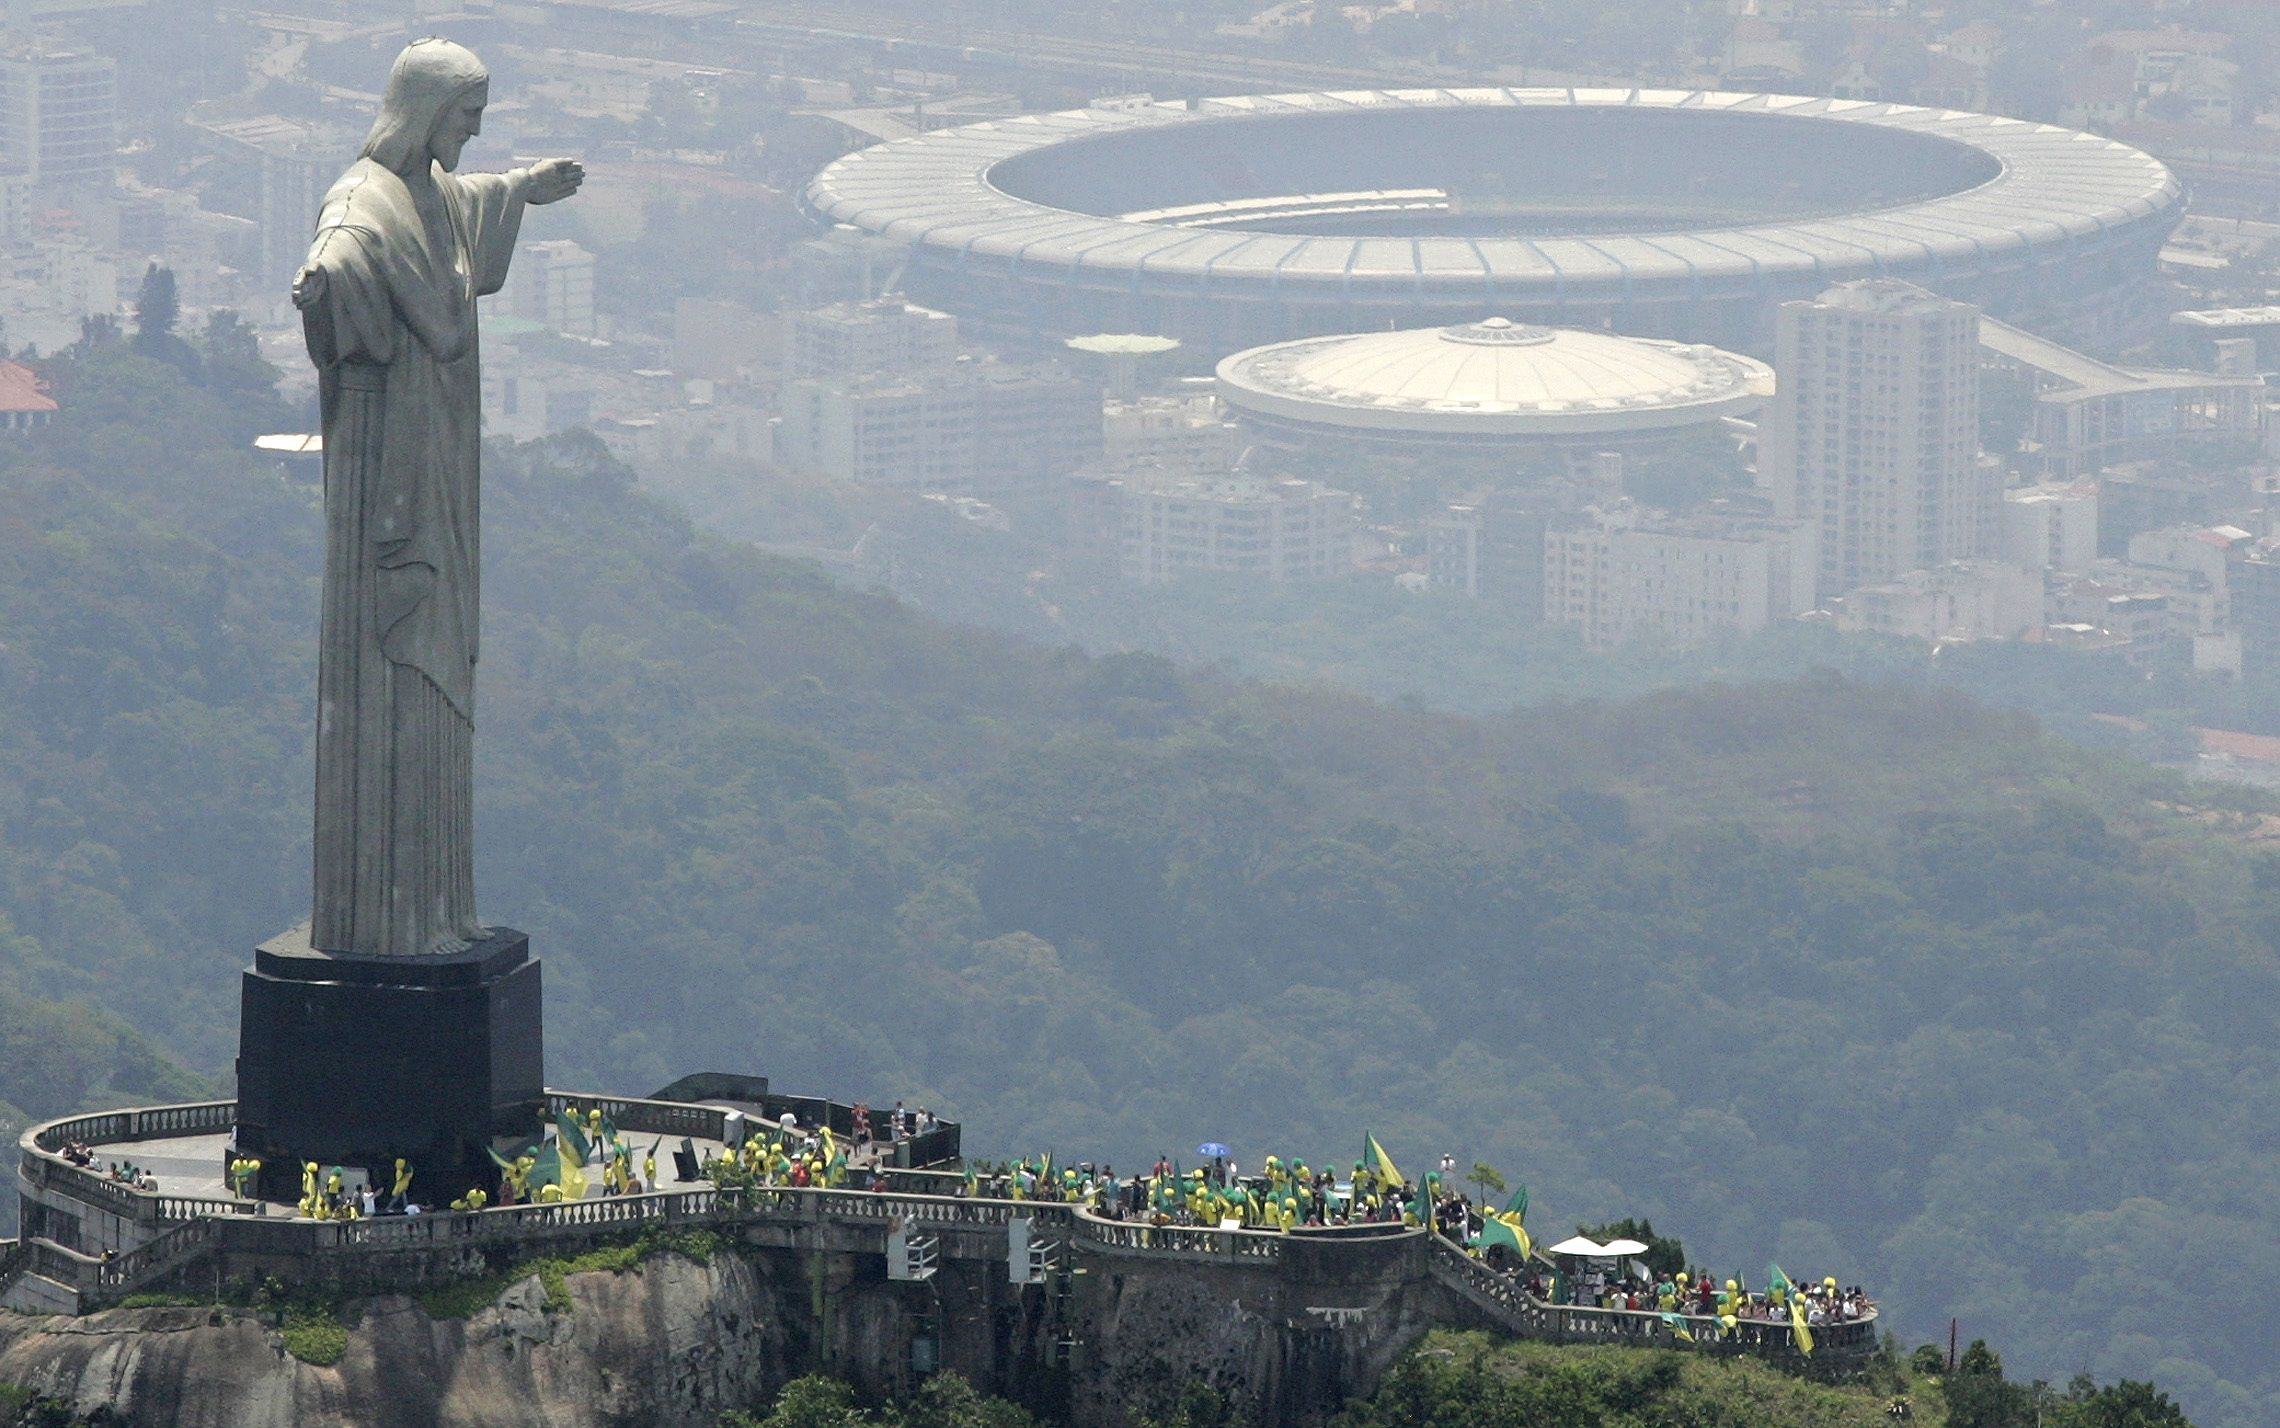 Christ the Redeemer is a statue of Jesus Christ in Rio de Janeiro, Brazil and was considered the largest Art Deco statue in the world.